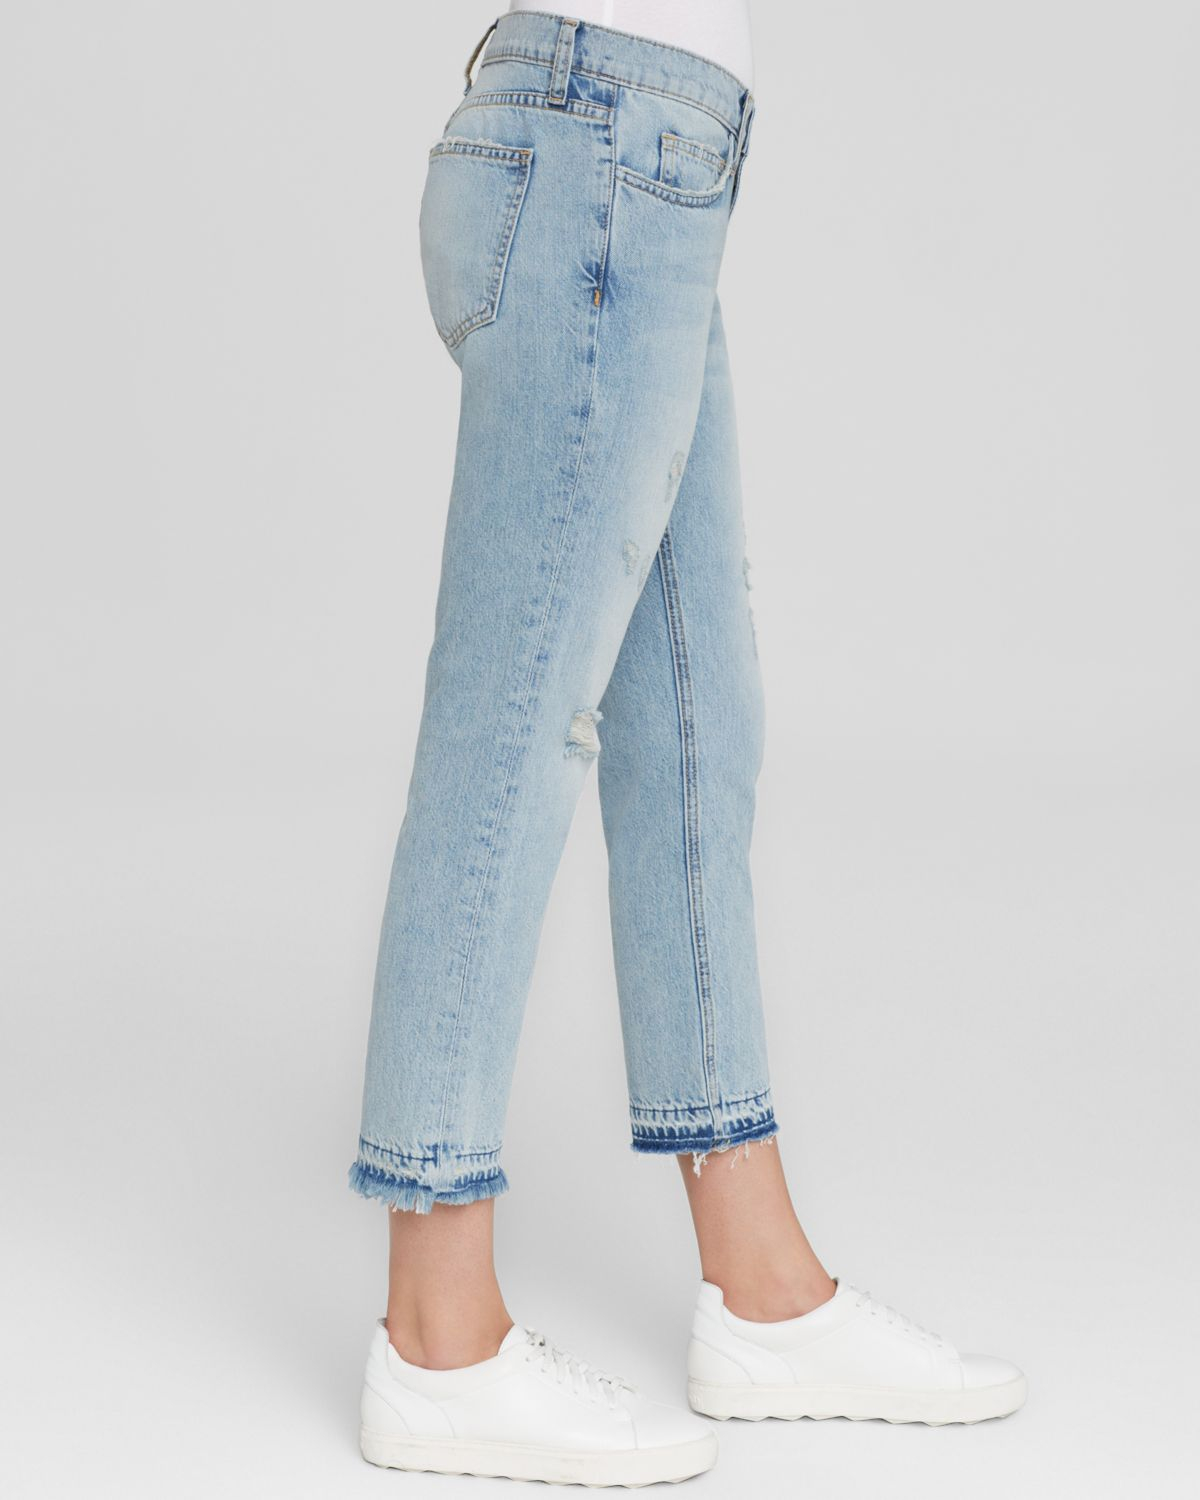 808f16b834799e Current/Elliott Jeans - The Cropped Straight In Sealine Destroy in ...